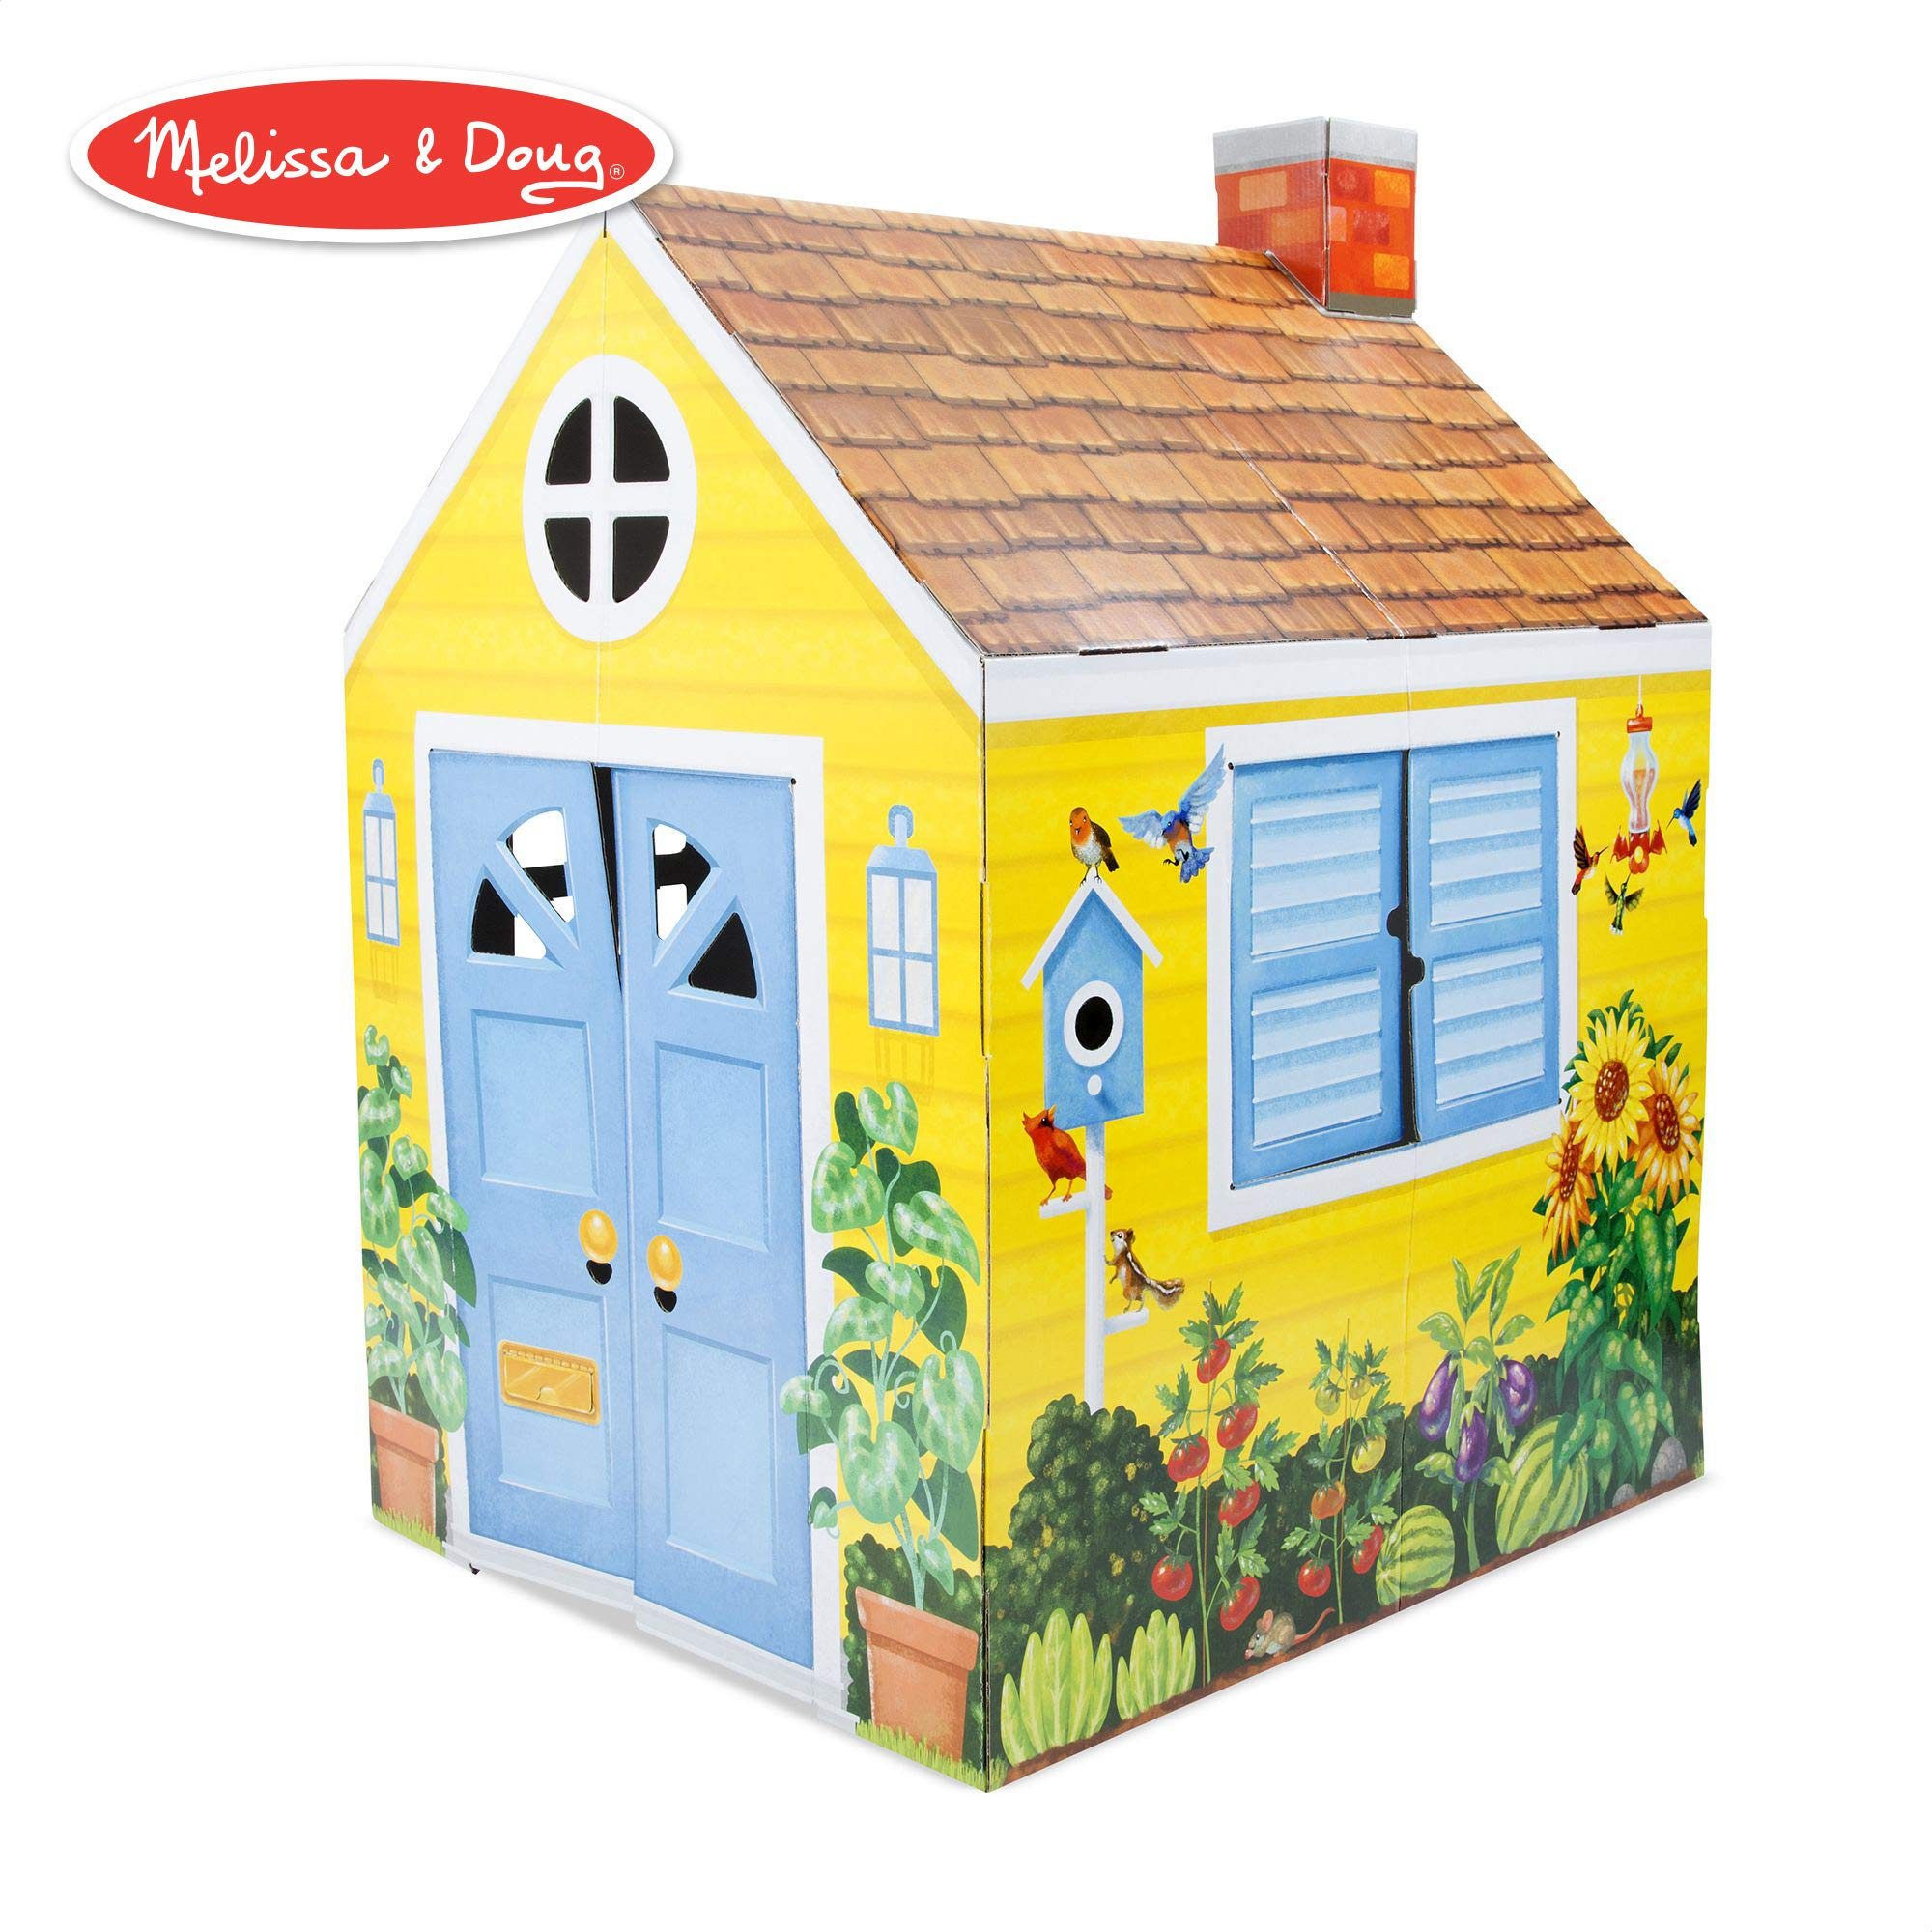 Melissa & Doug Country Cottage Indoor Playhouse (Role-Play Center, Sturdy Construction, Vibrant Exterior Artwork, 54'' H x 39'' W x 33.4'' L)